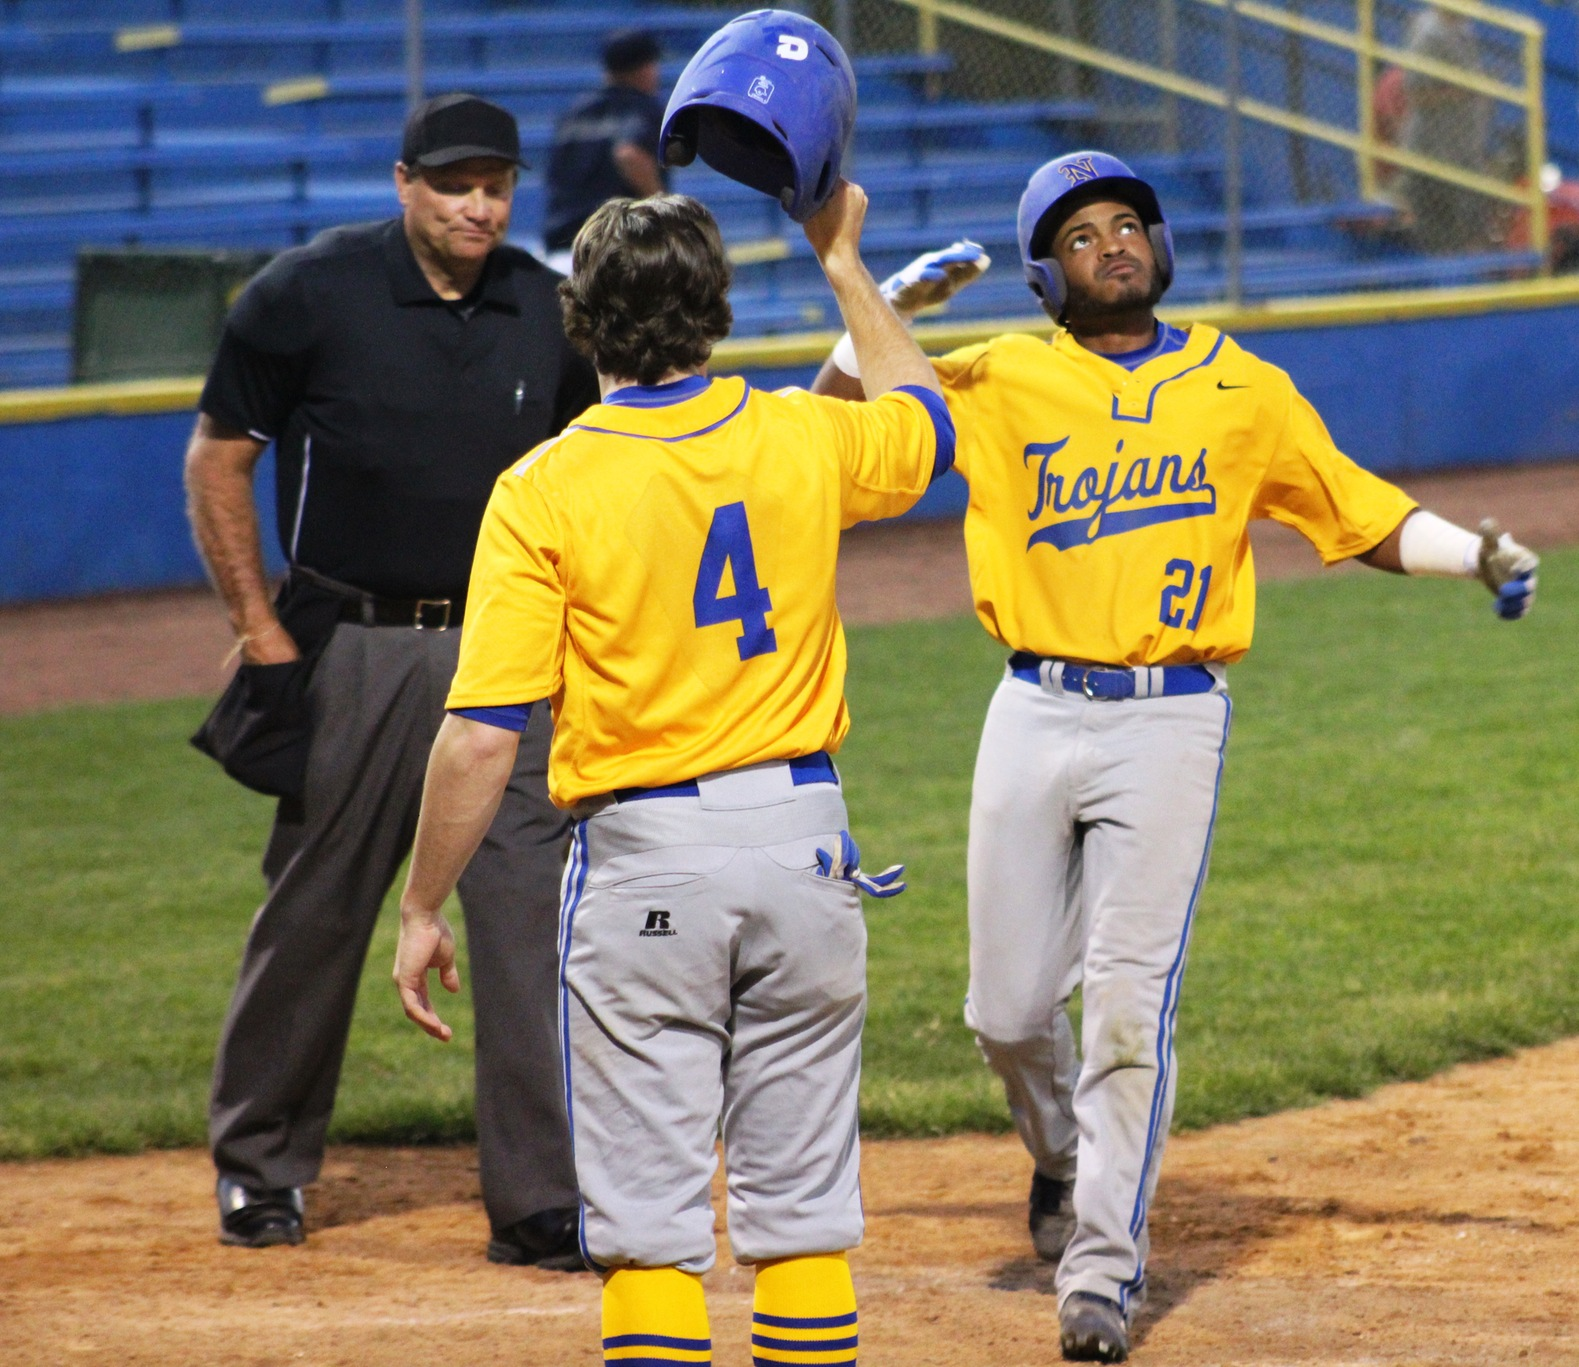 NIACC's Eze Encarnacion approaches home plate after hitting a home run against Iowa Central in the 2017 regional tournament in Waterloo.